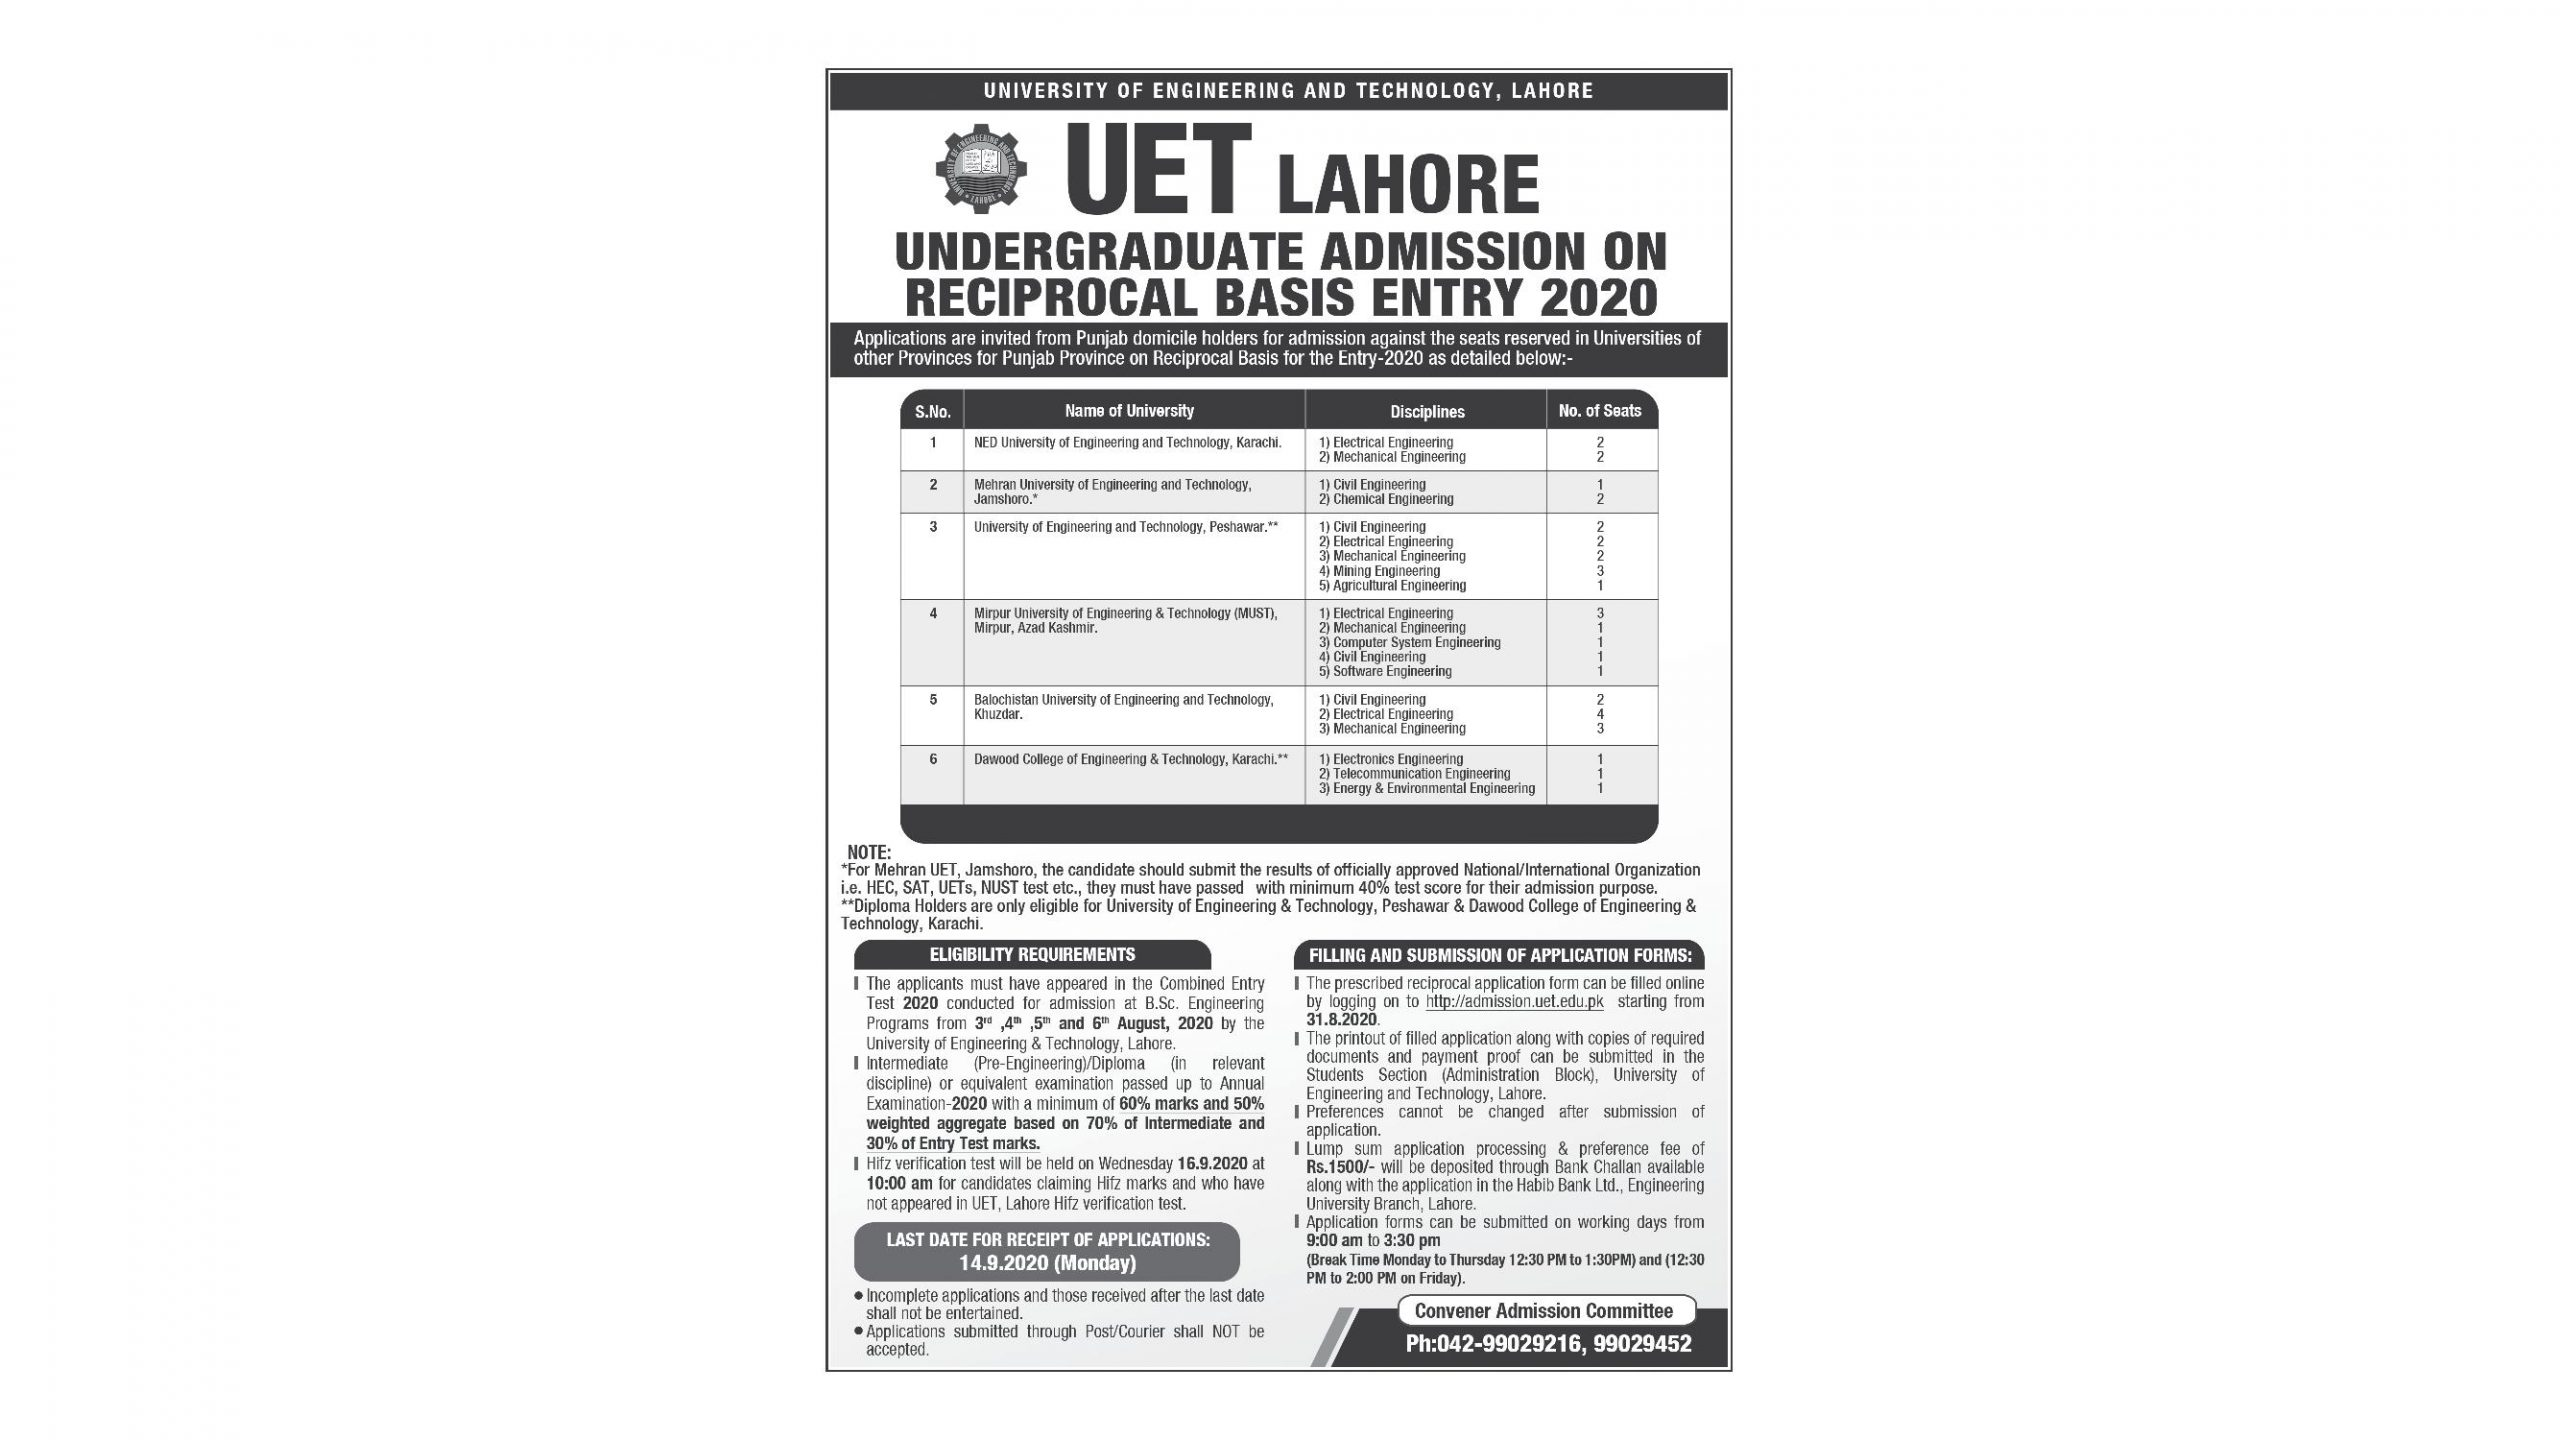 University Of Engineering & Technology Lahore Admissions Reciprocal